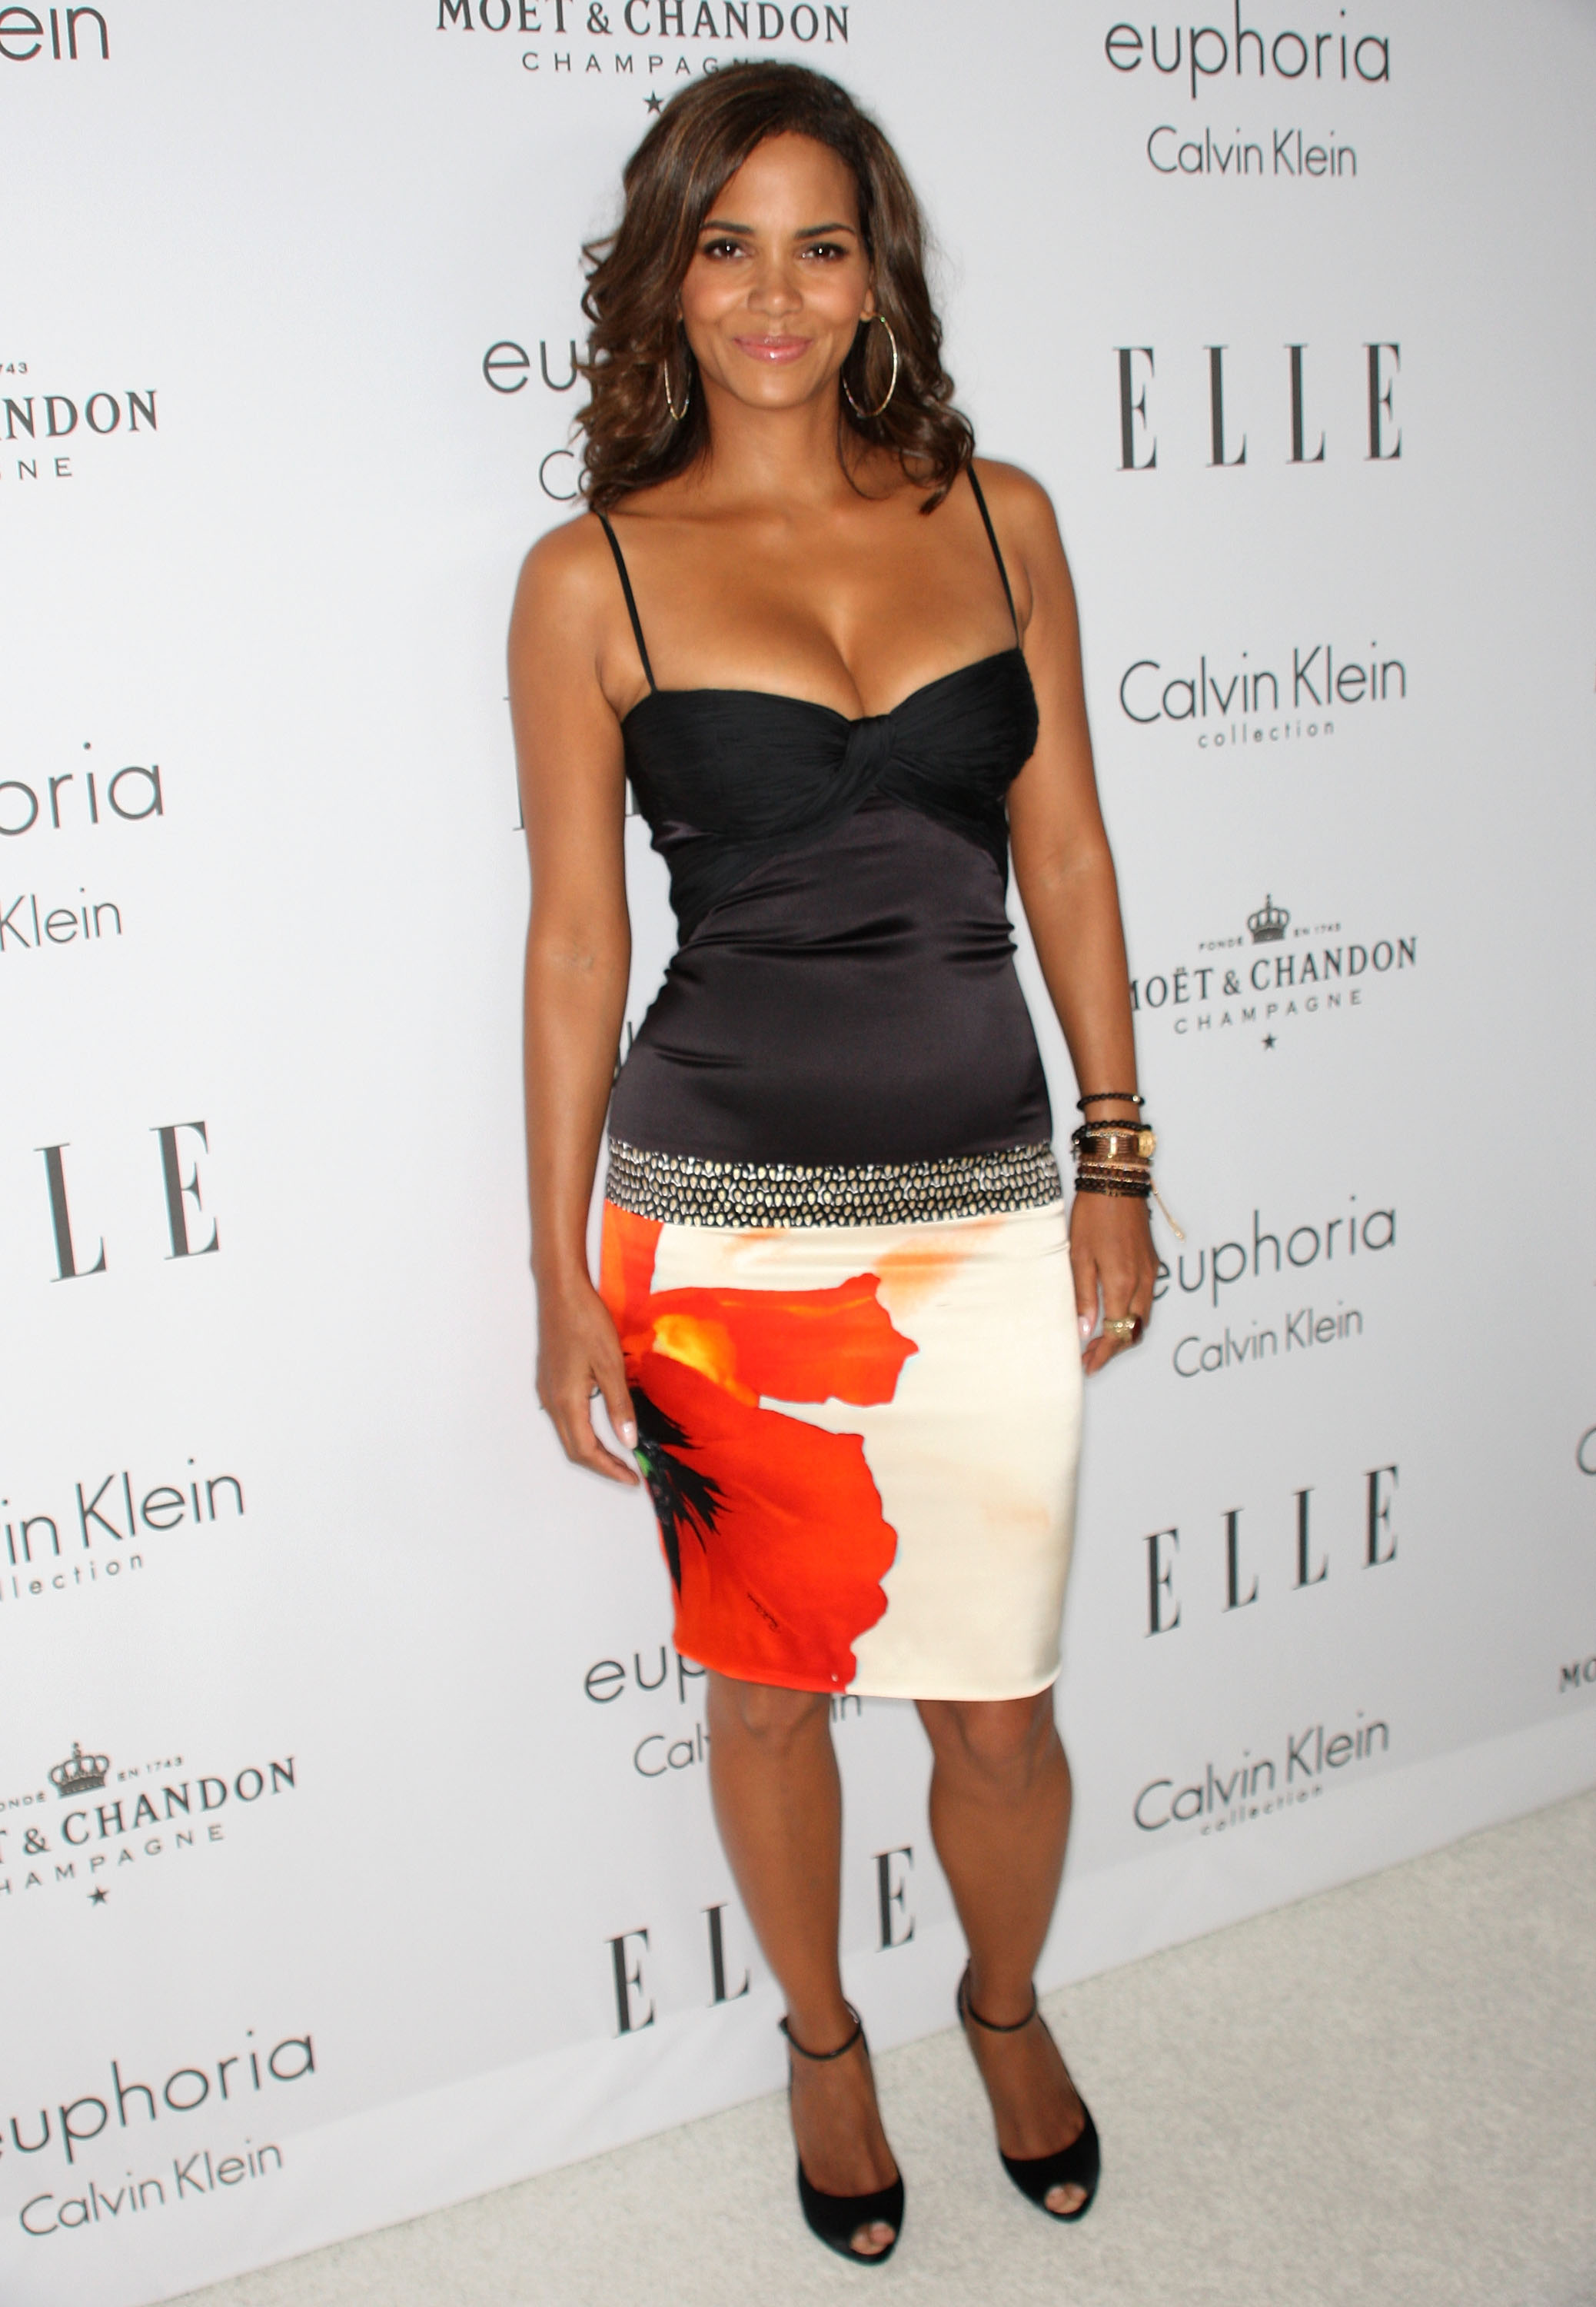 59482_Celebutopia-Halle_Berry-15th_annual_Women_In_Hollywood_Tribute-02_122_584lo.jpg